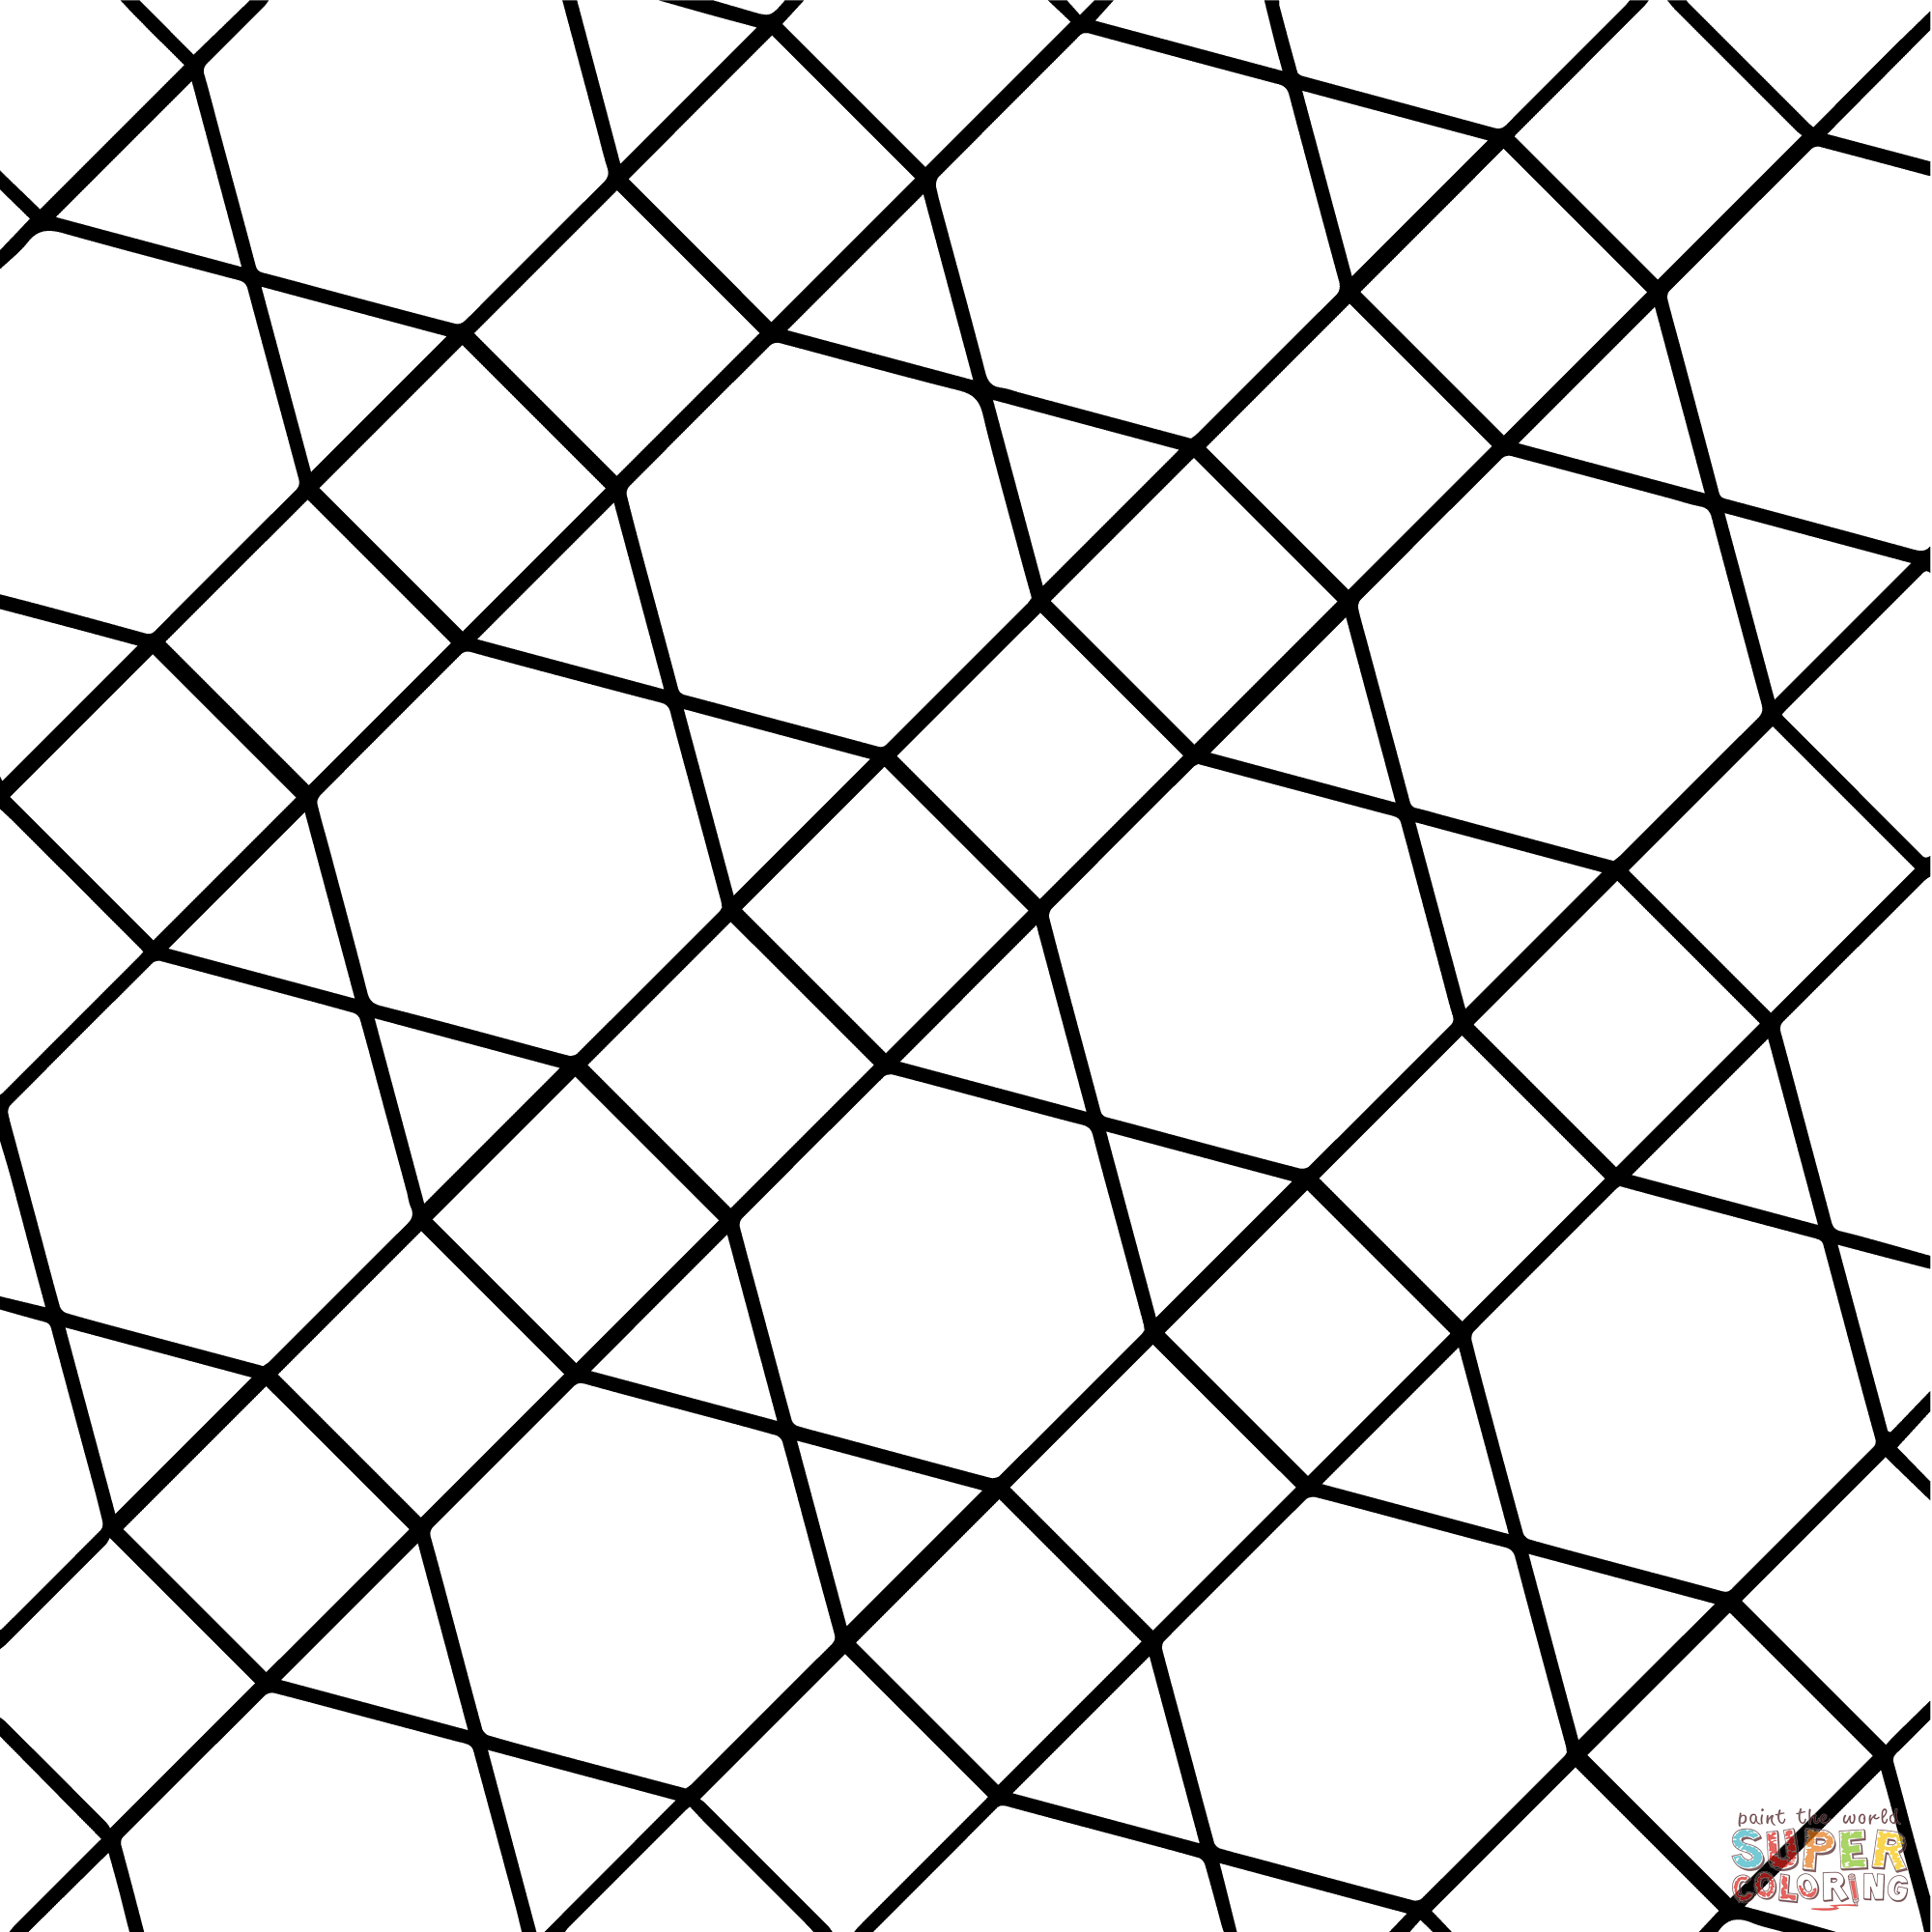 2000x2000 Geometric Tessellation With Hexagon, Triangle And Square Coloring